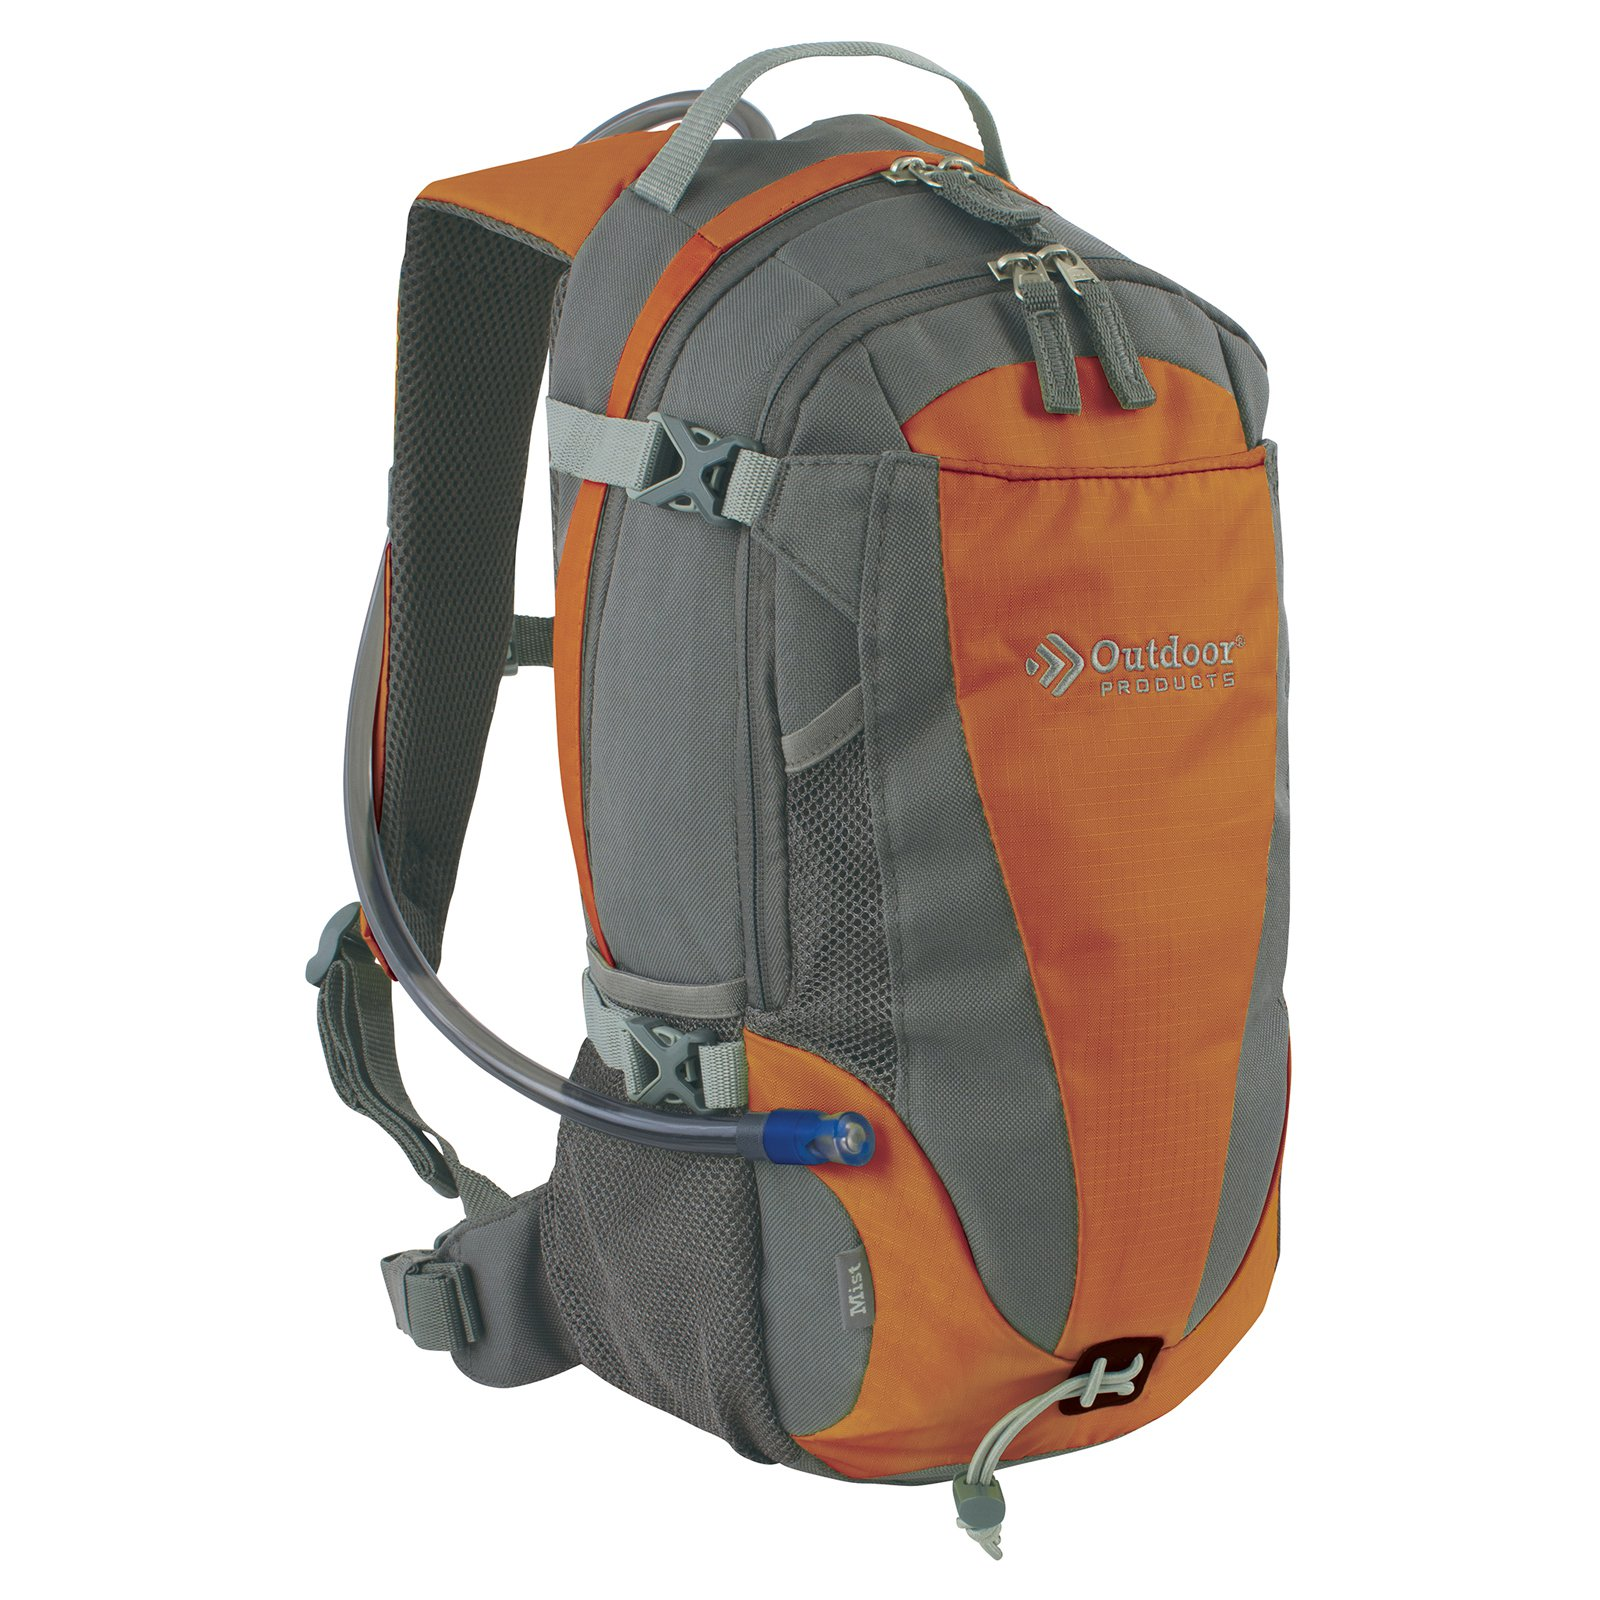 Outdoor Products Mist Hydration Backpack by Outdoor Products